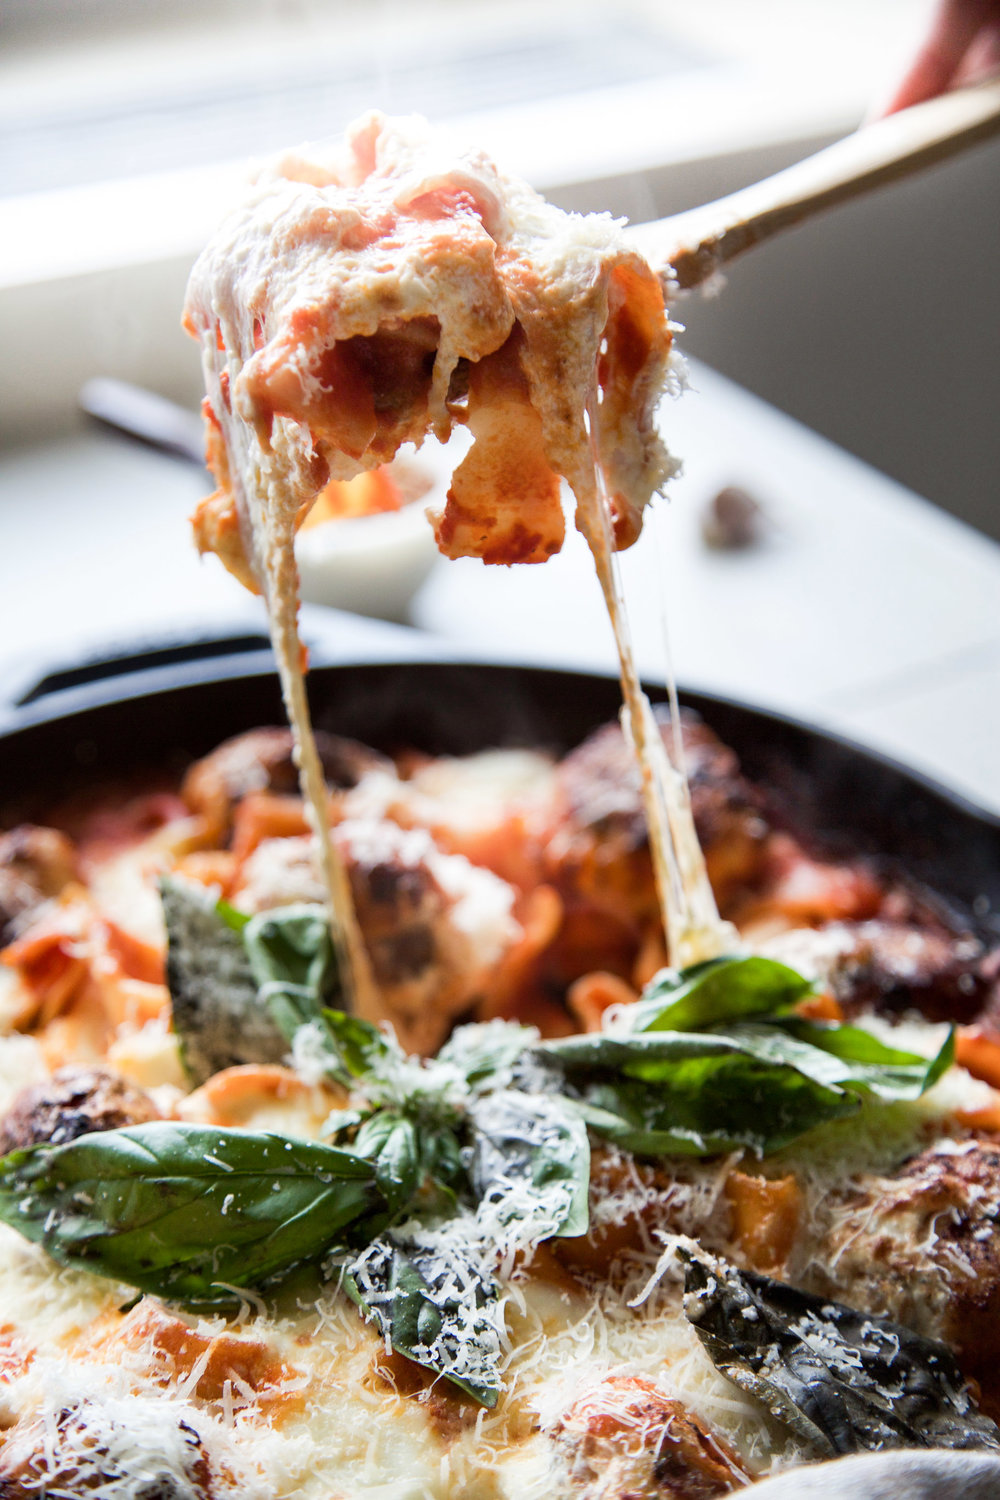 One-Pan-Chicken-Parm-Meatball-Burrata-Pasta-Bake7.jpg